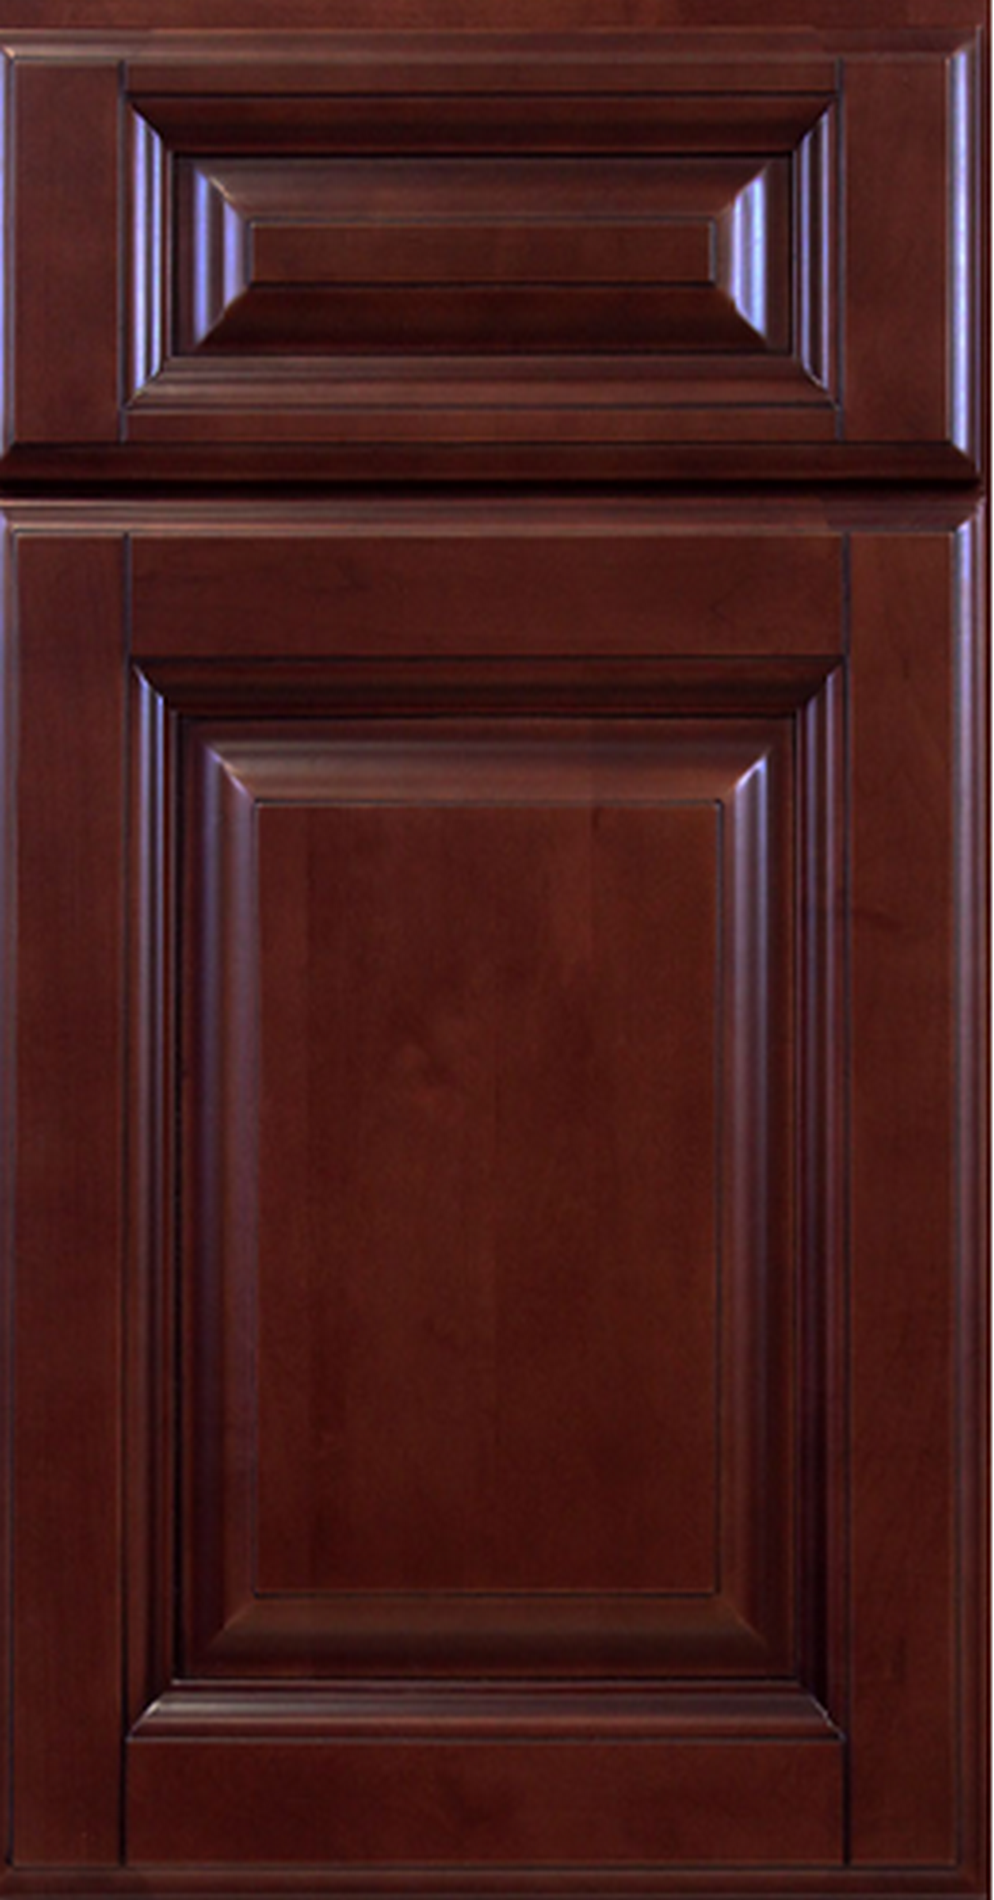 Forevermark Pacifica Kitchen Cabinet  Db36pc  Base Cabinets. Dining Room Furniture Denver. Garden Rooms Design. Living Rooms Designs. Emergency Room Code Red Game. Fsu Dorm Rooms. Dressing Room Designs. Wainscoting Ideas For Dining Room. Folding Room Dividers Cheap